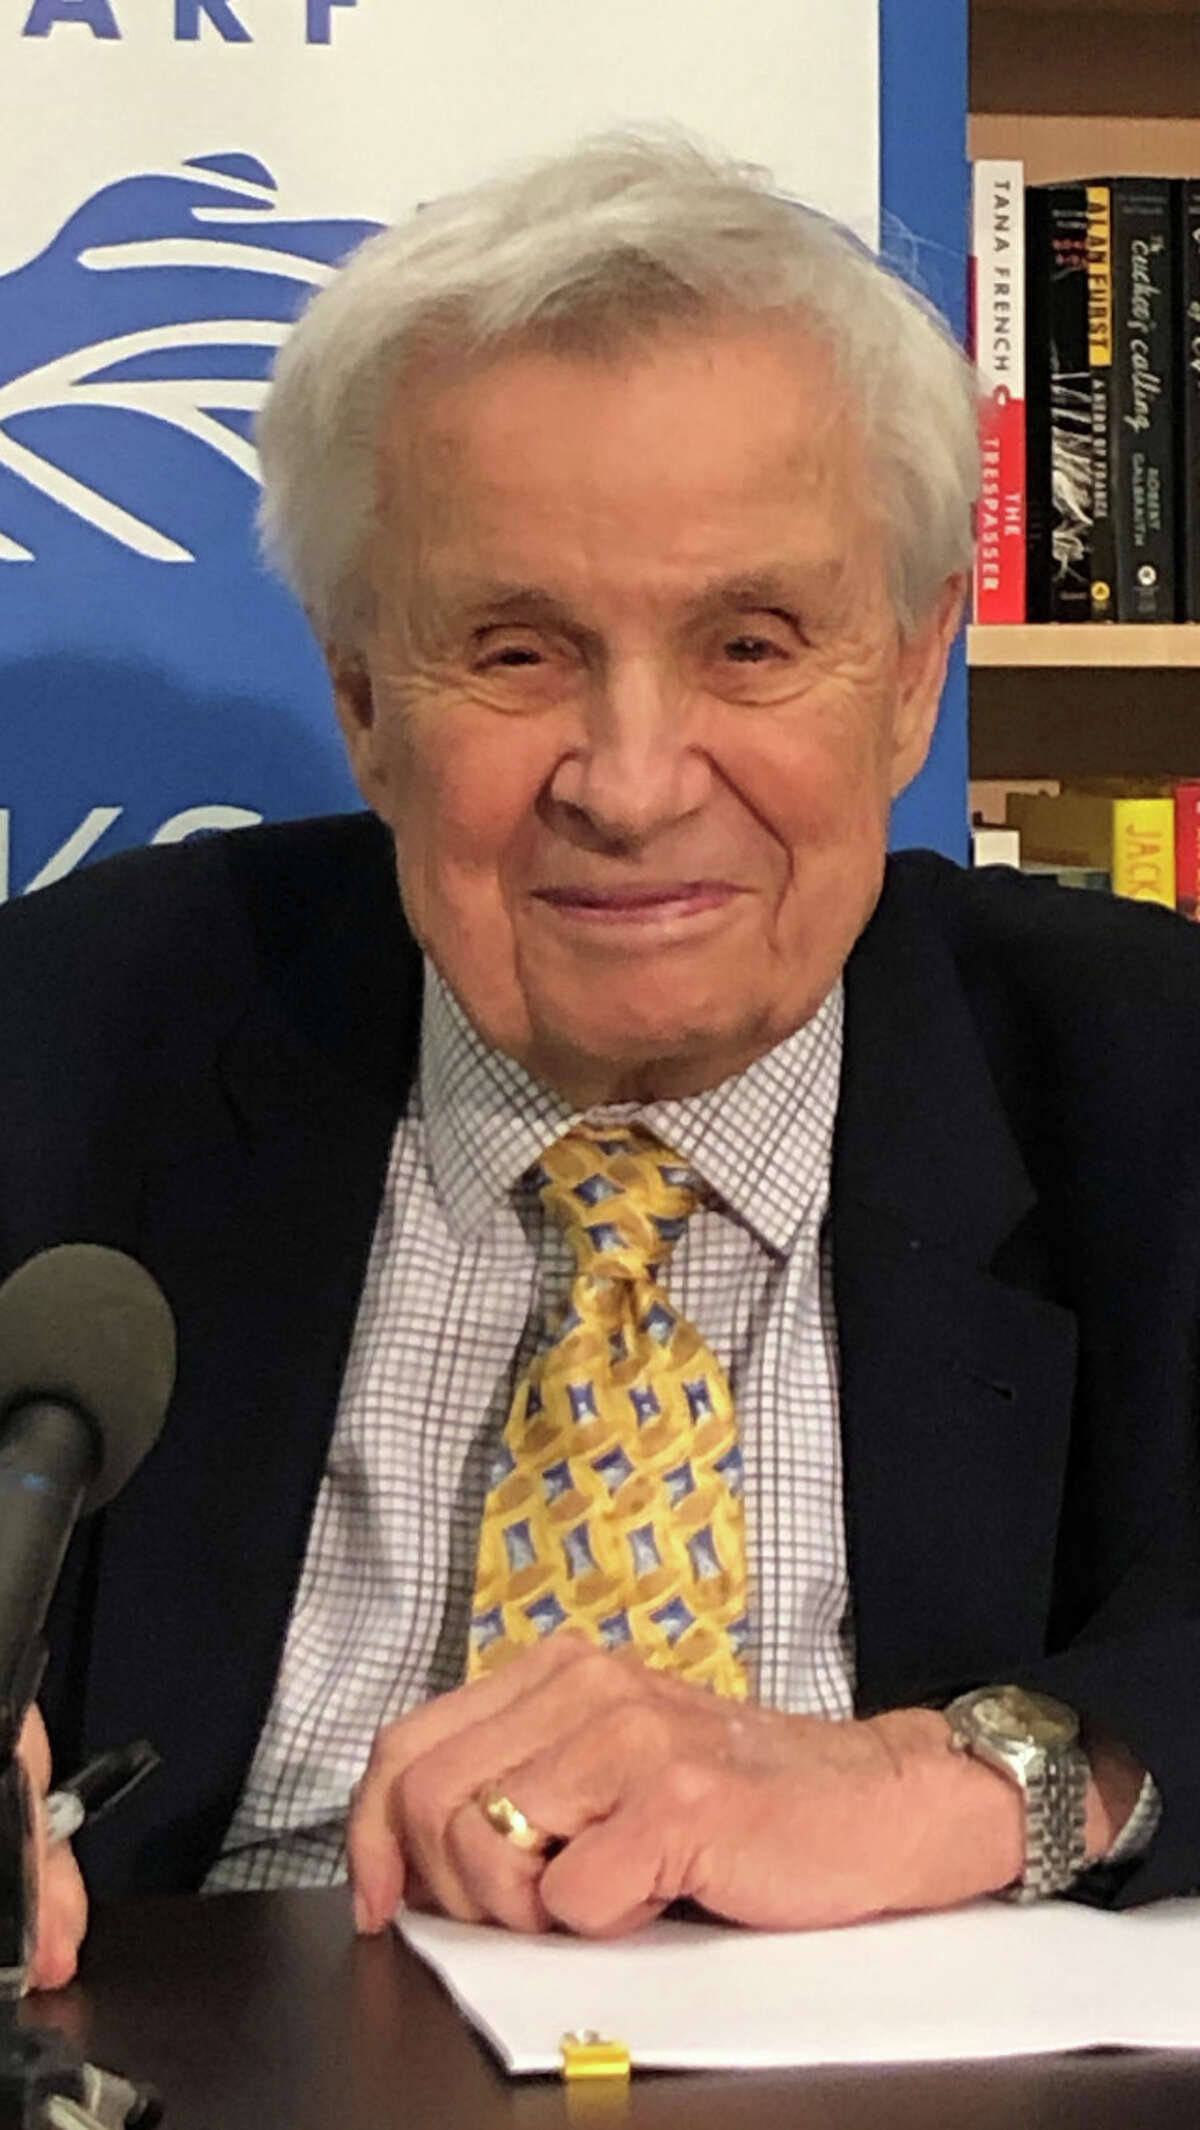 Jerrold M. Post, 86, a psychiatrist who worked for the CIA producing psychological profiles of foreign leaders such as Saddam Hussein, died of covid-19 a year after publishing a book about President Trump.